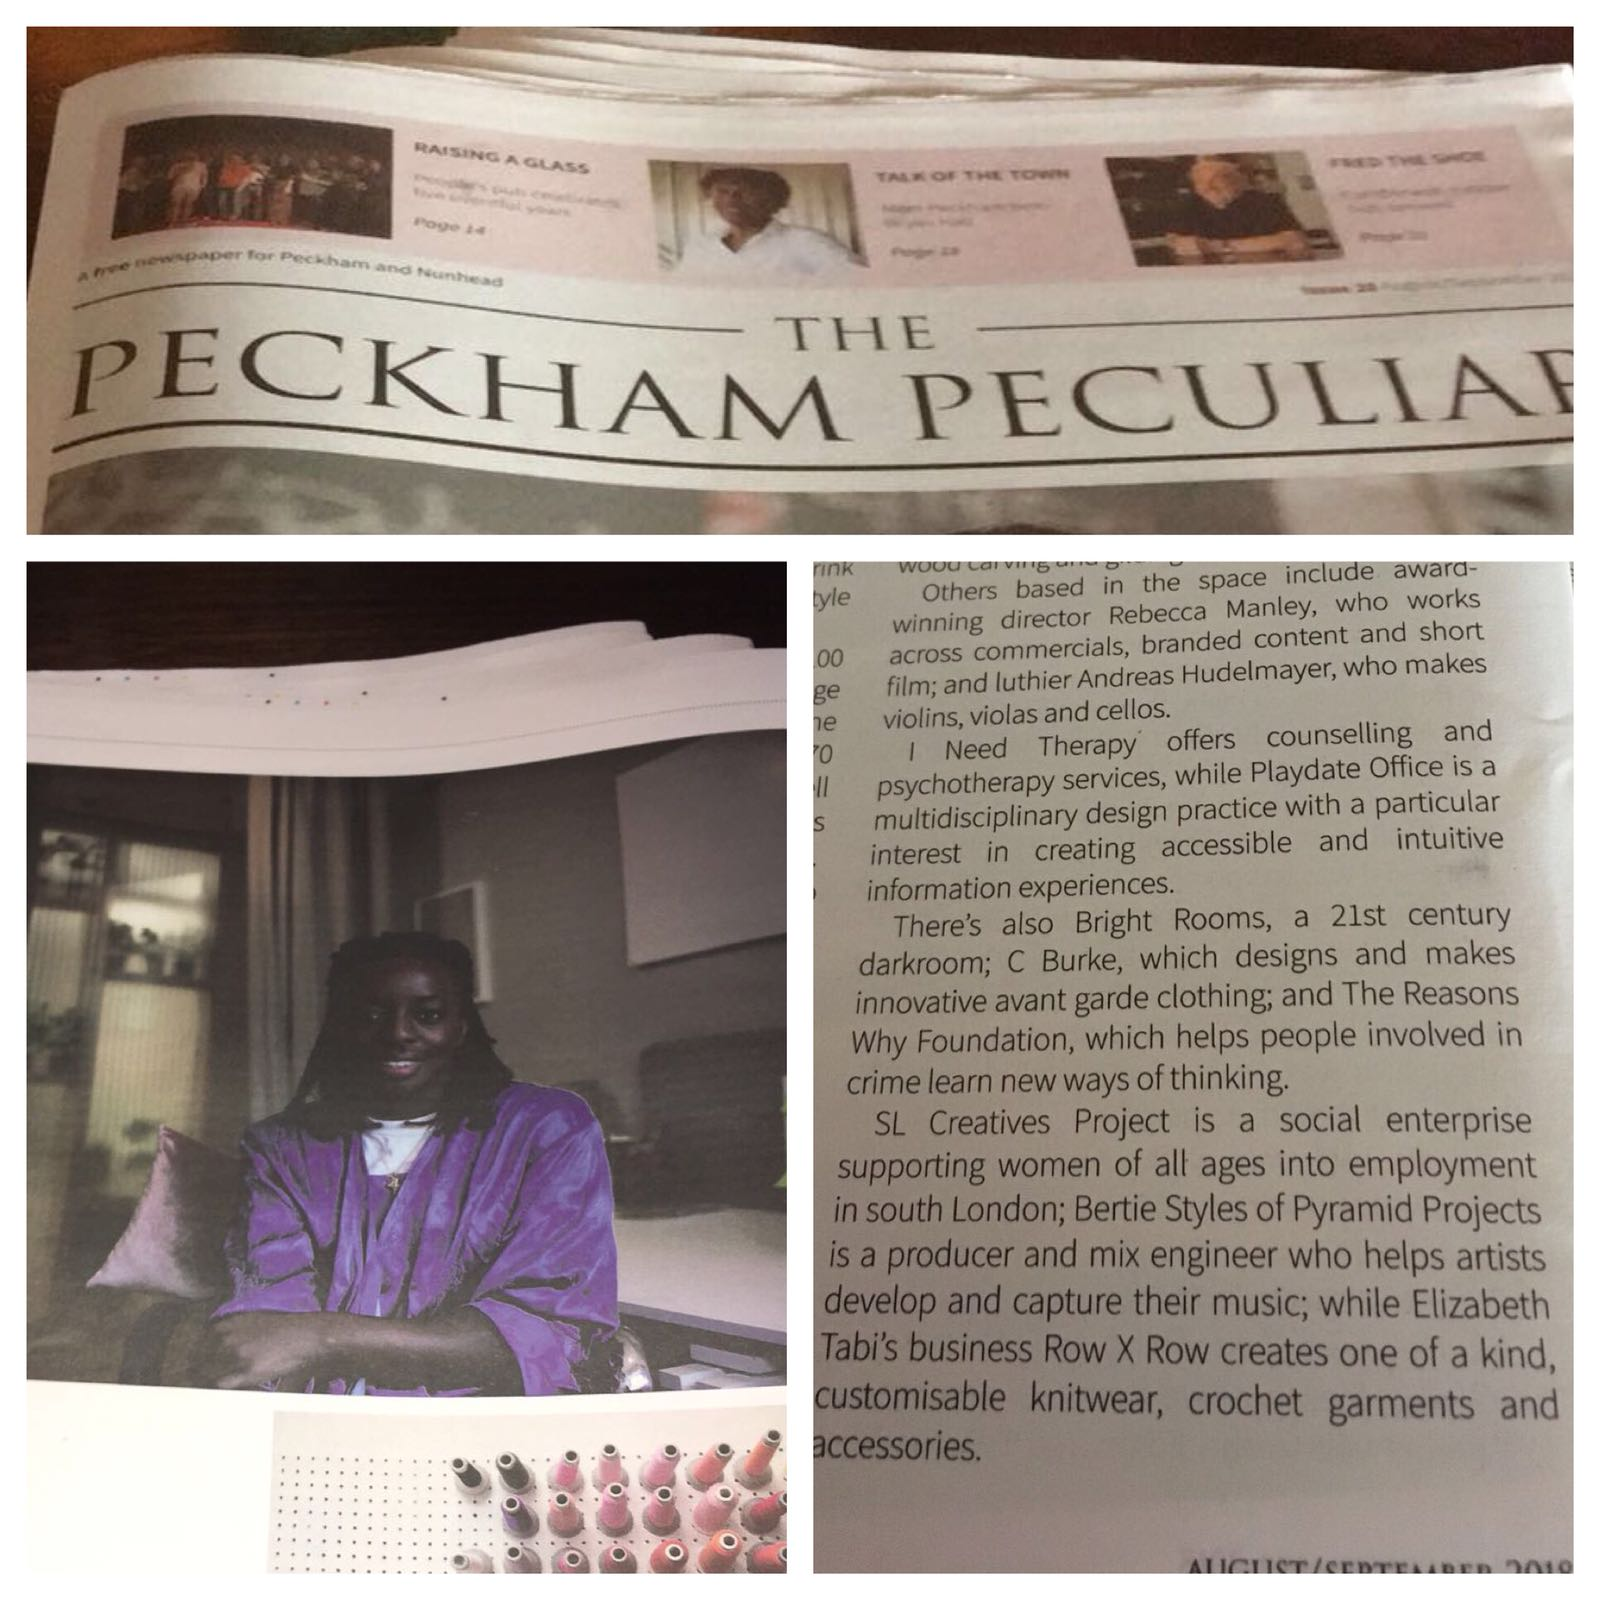 press- peckham peculiar .JPG